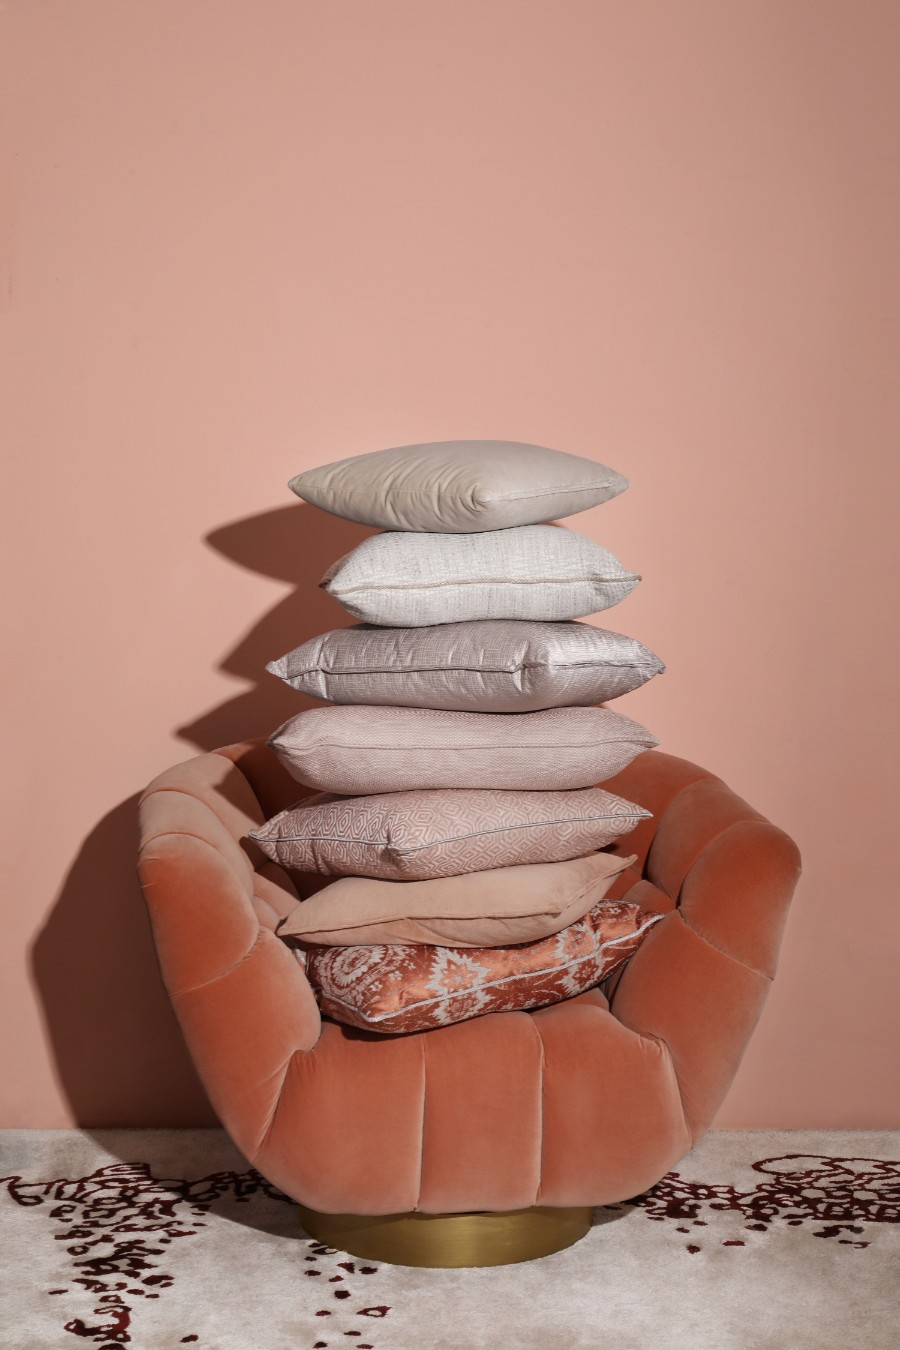 Upholstery Fabrics with Pantone's Color of 2019 pantone's color Upholstery Fabrics with Pantone's Colour of 2019 Upholstery Fabrics with Pantones Color of 20193